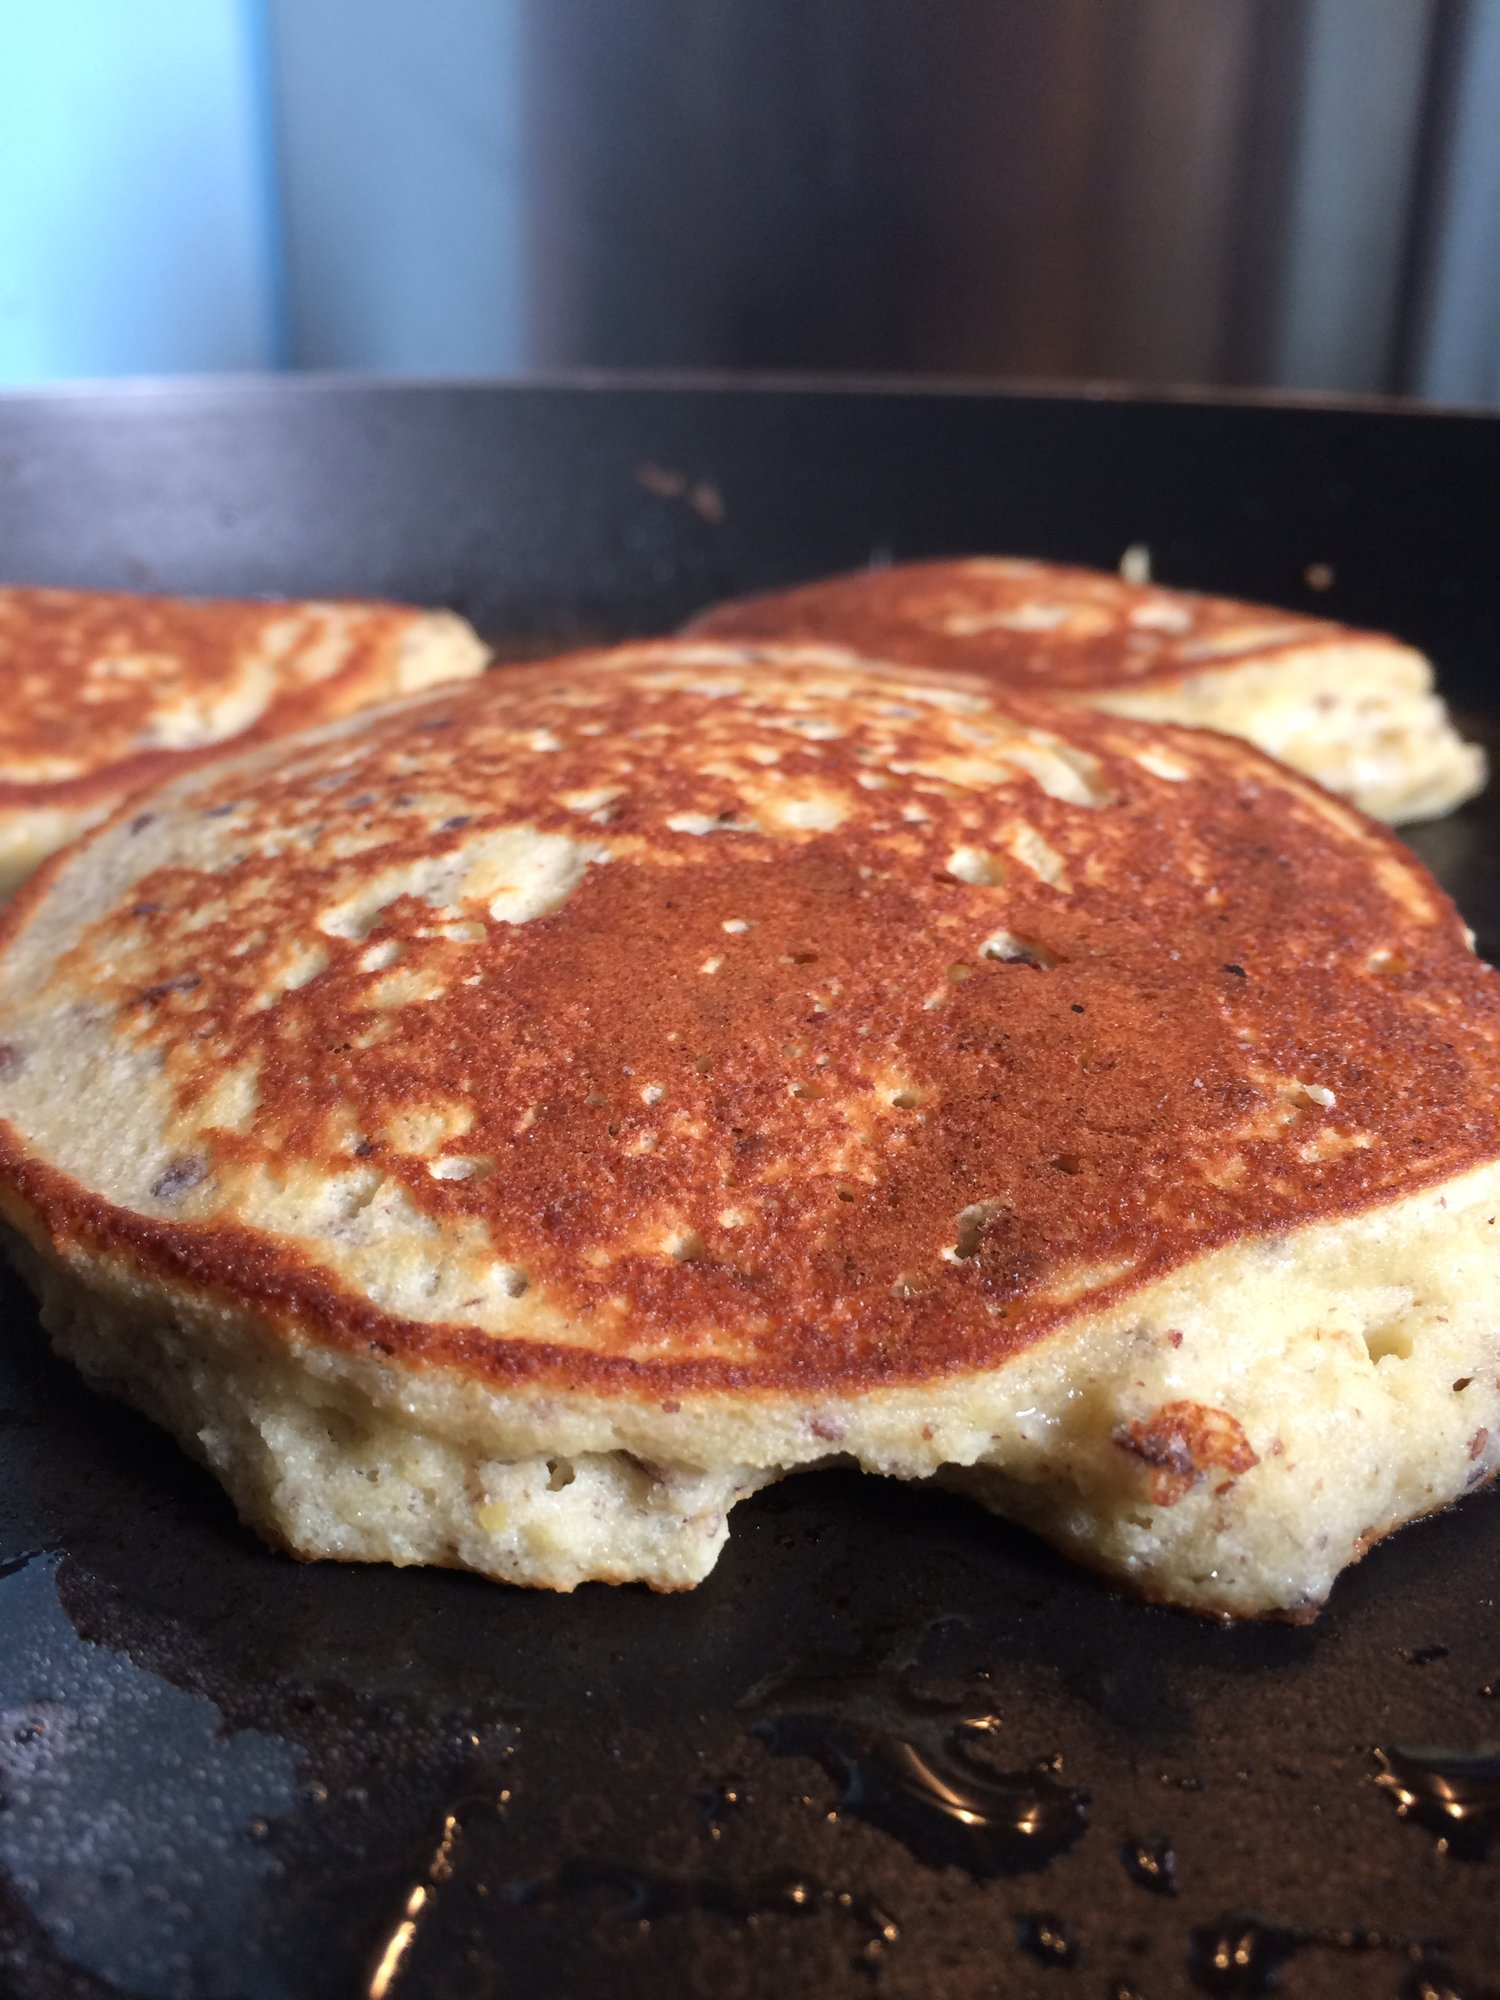 Buckwheat pancakes fluffing up nicely in the pan.